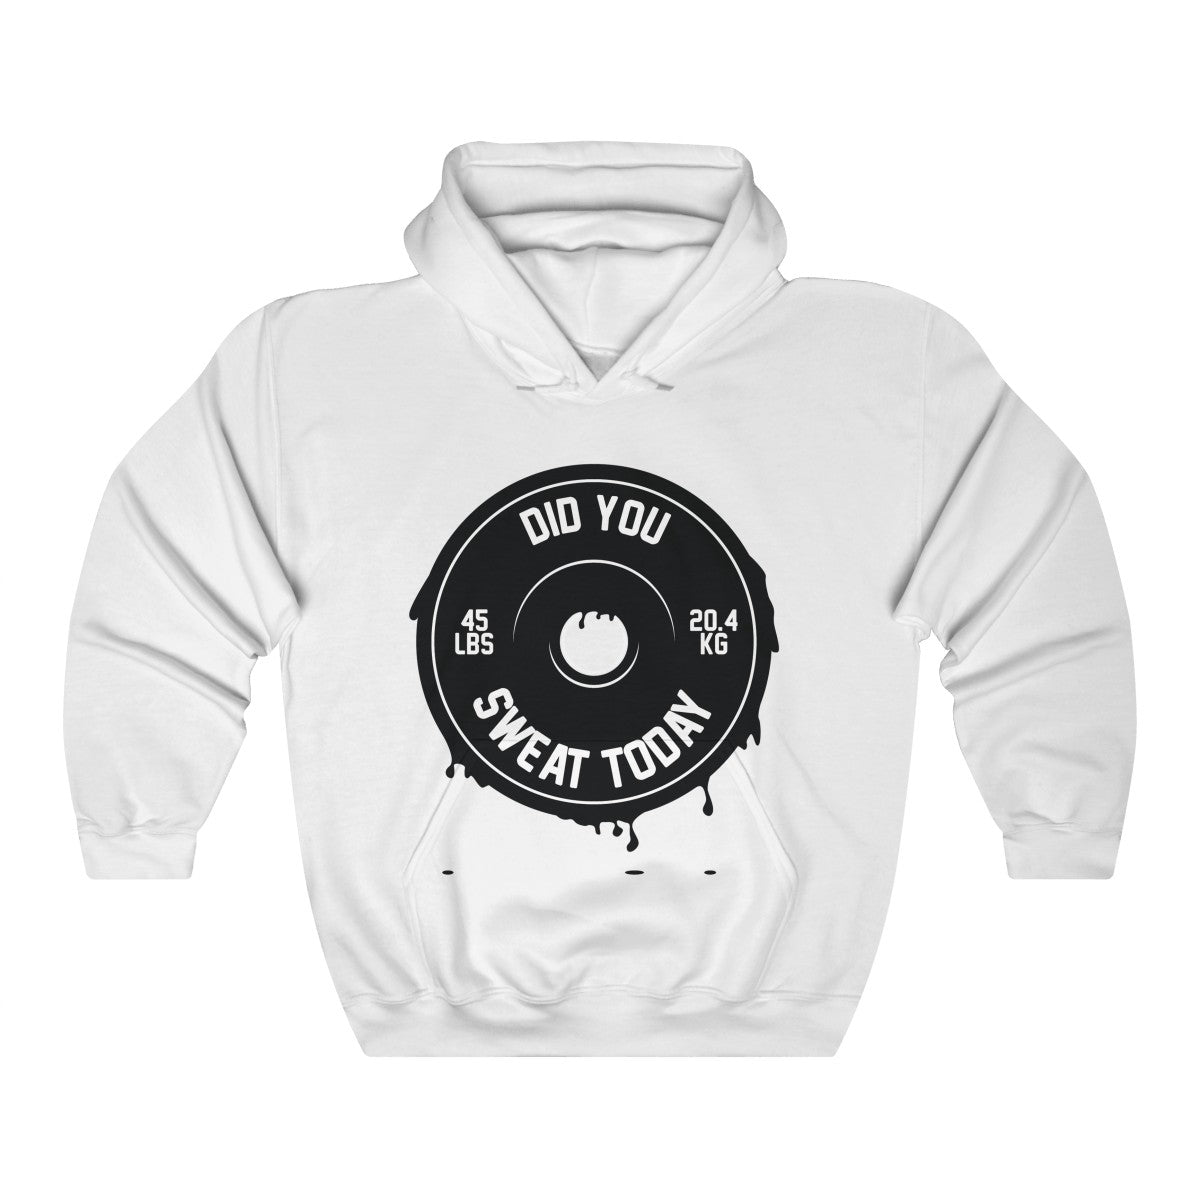 Did You Sweat Today - Unisex Heavy Blend™ Hooded Sweatshirt